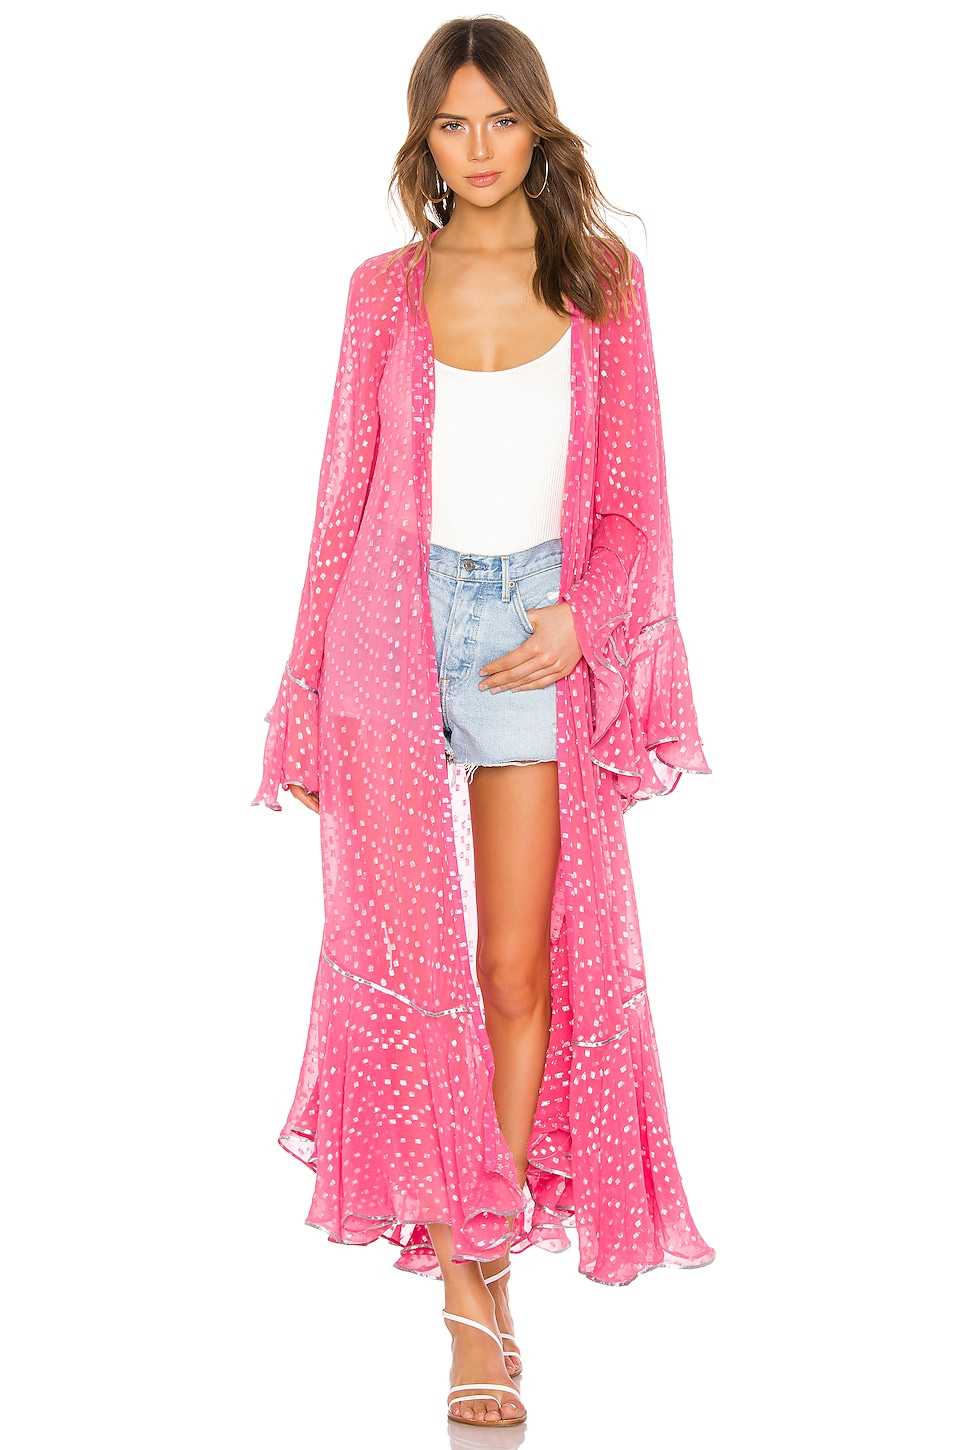 ROCOCO SAND Orlean Maxi Robe in Pink